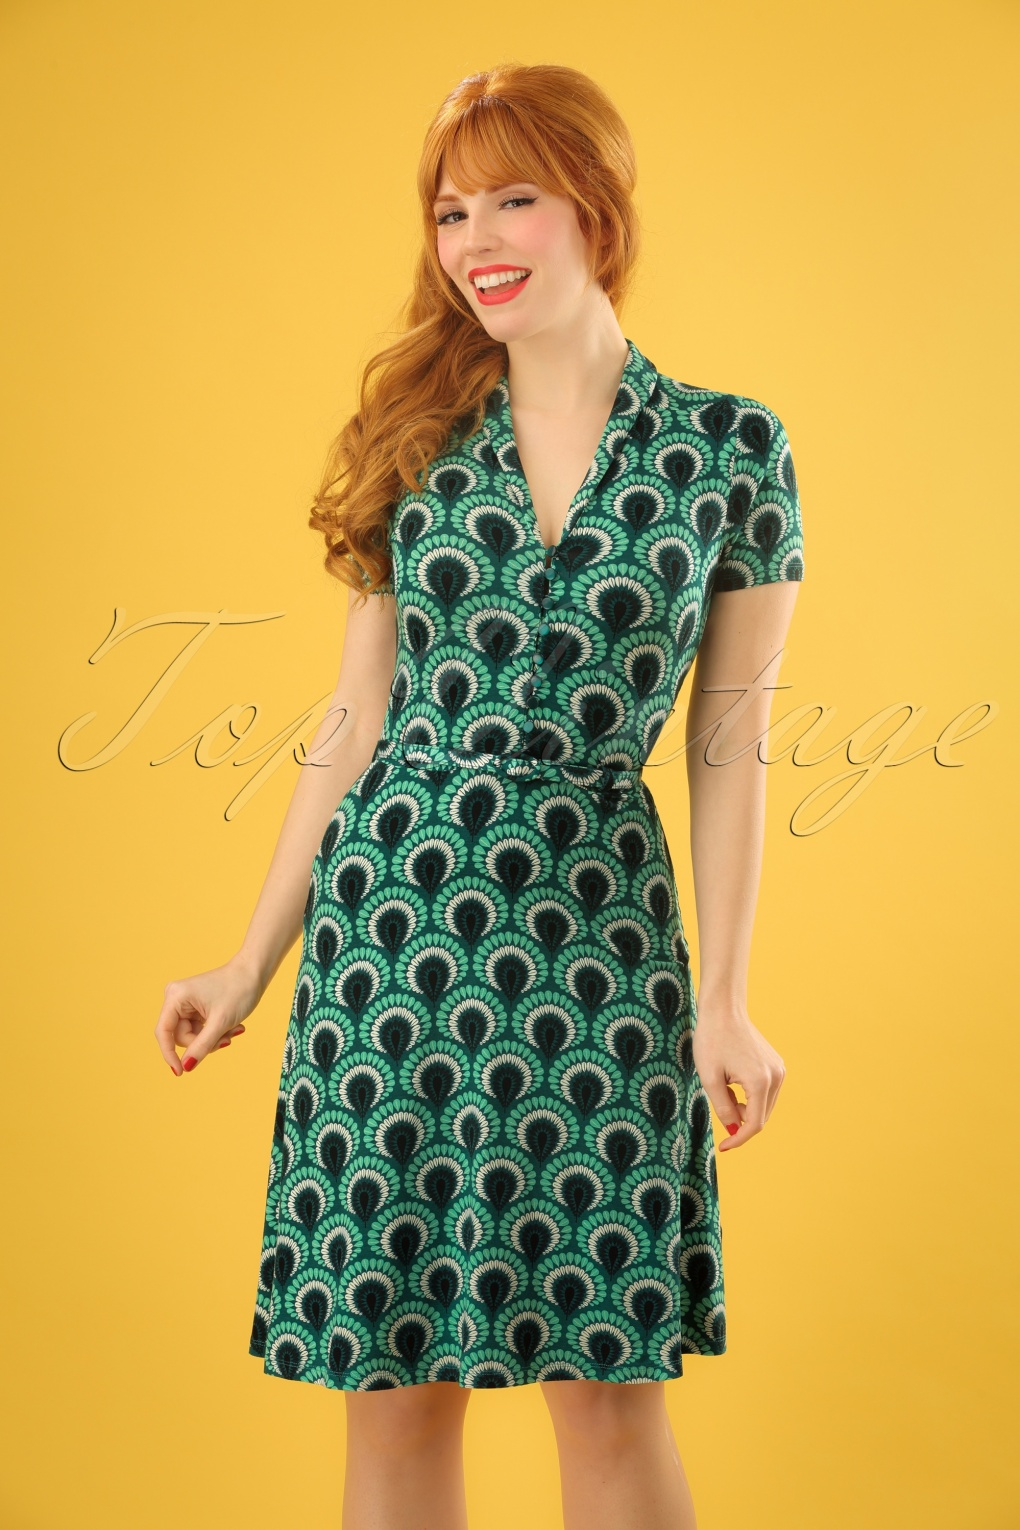 60s Plus Size Retro Dresses, Clothing, Costumes | 70s Dresses 60s Emmy Peacock Dress in Rock Green £88.21 AT vintagedancer.com